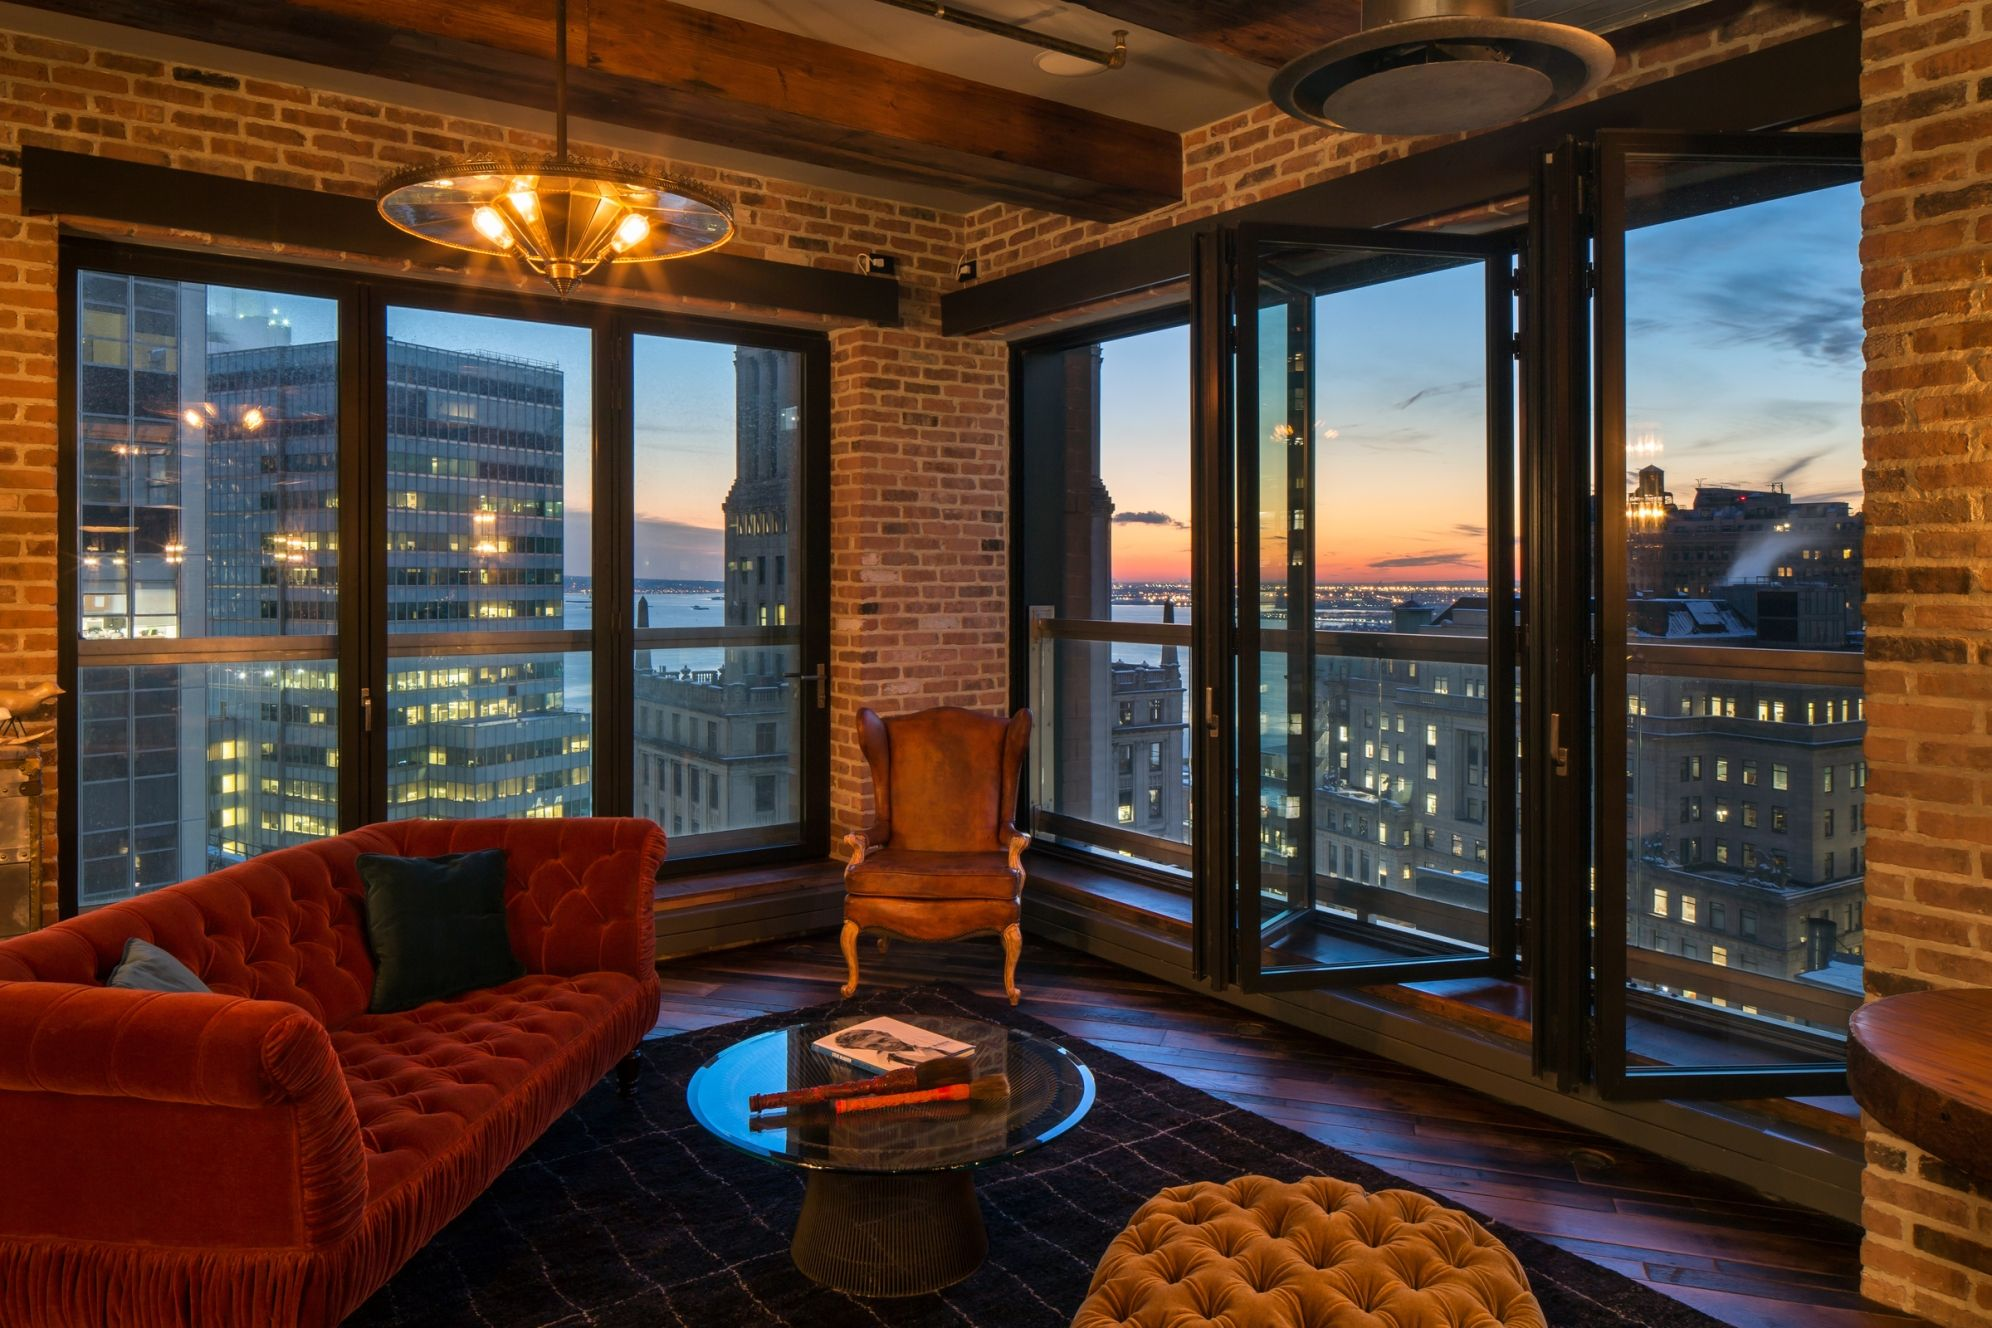 The Penthouse at The Setai Wall Street is one of the most lavishly